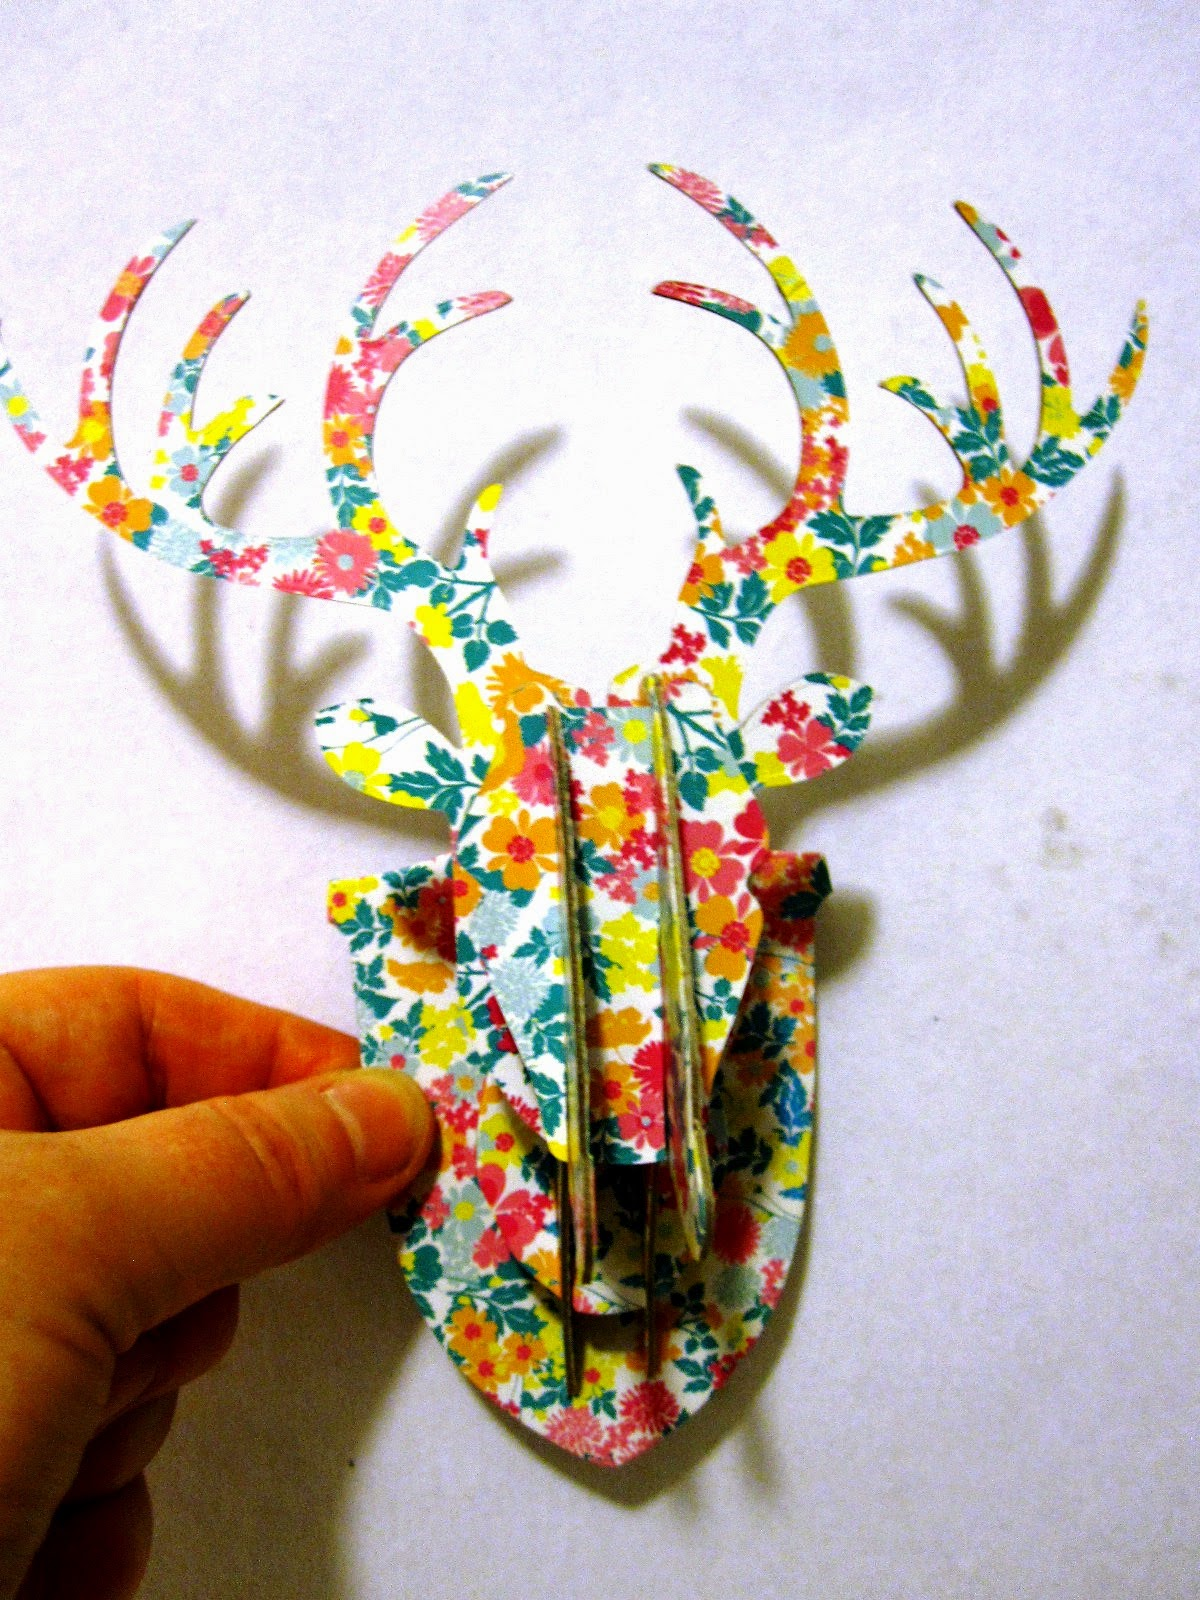 A hand holding up a miniature cardboard stag head, printed with a flower pattern.